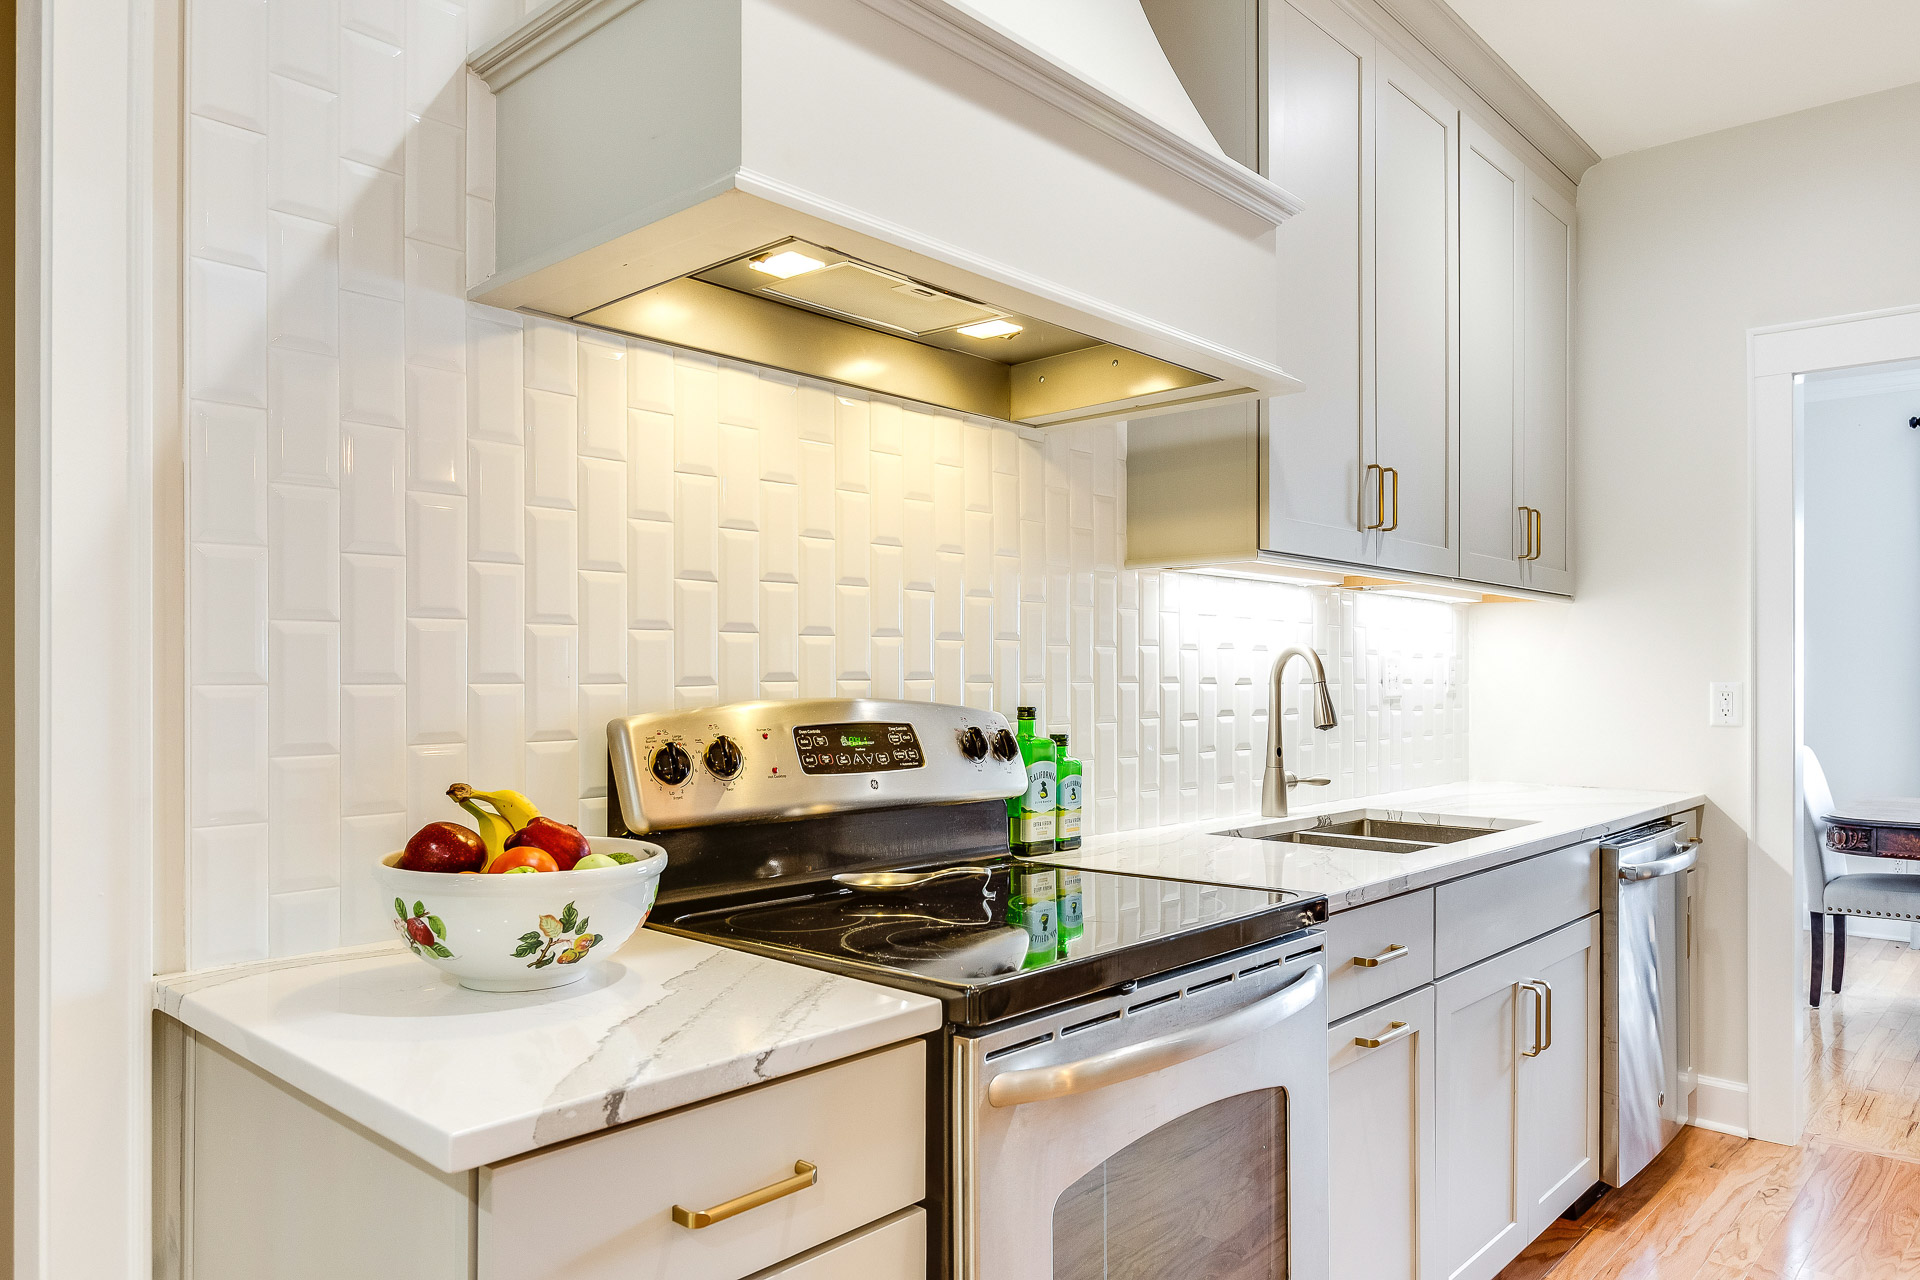 Under cabinet lighting by Task was used in the work areas and in the range hood.